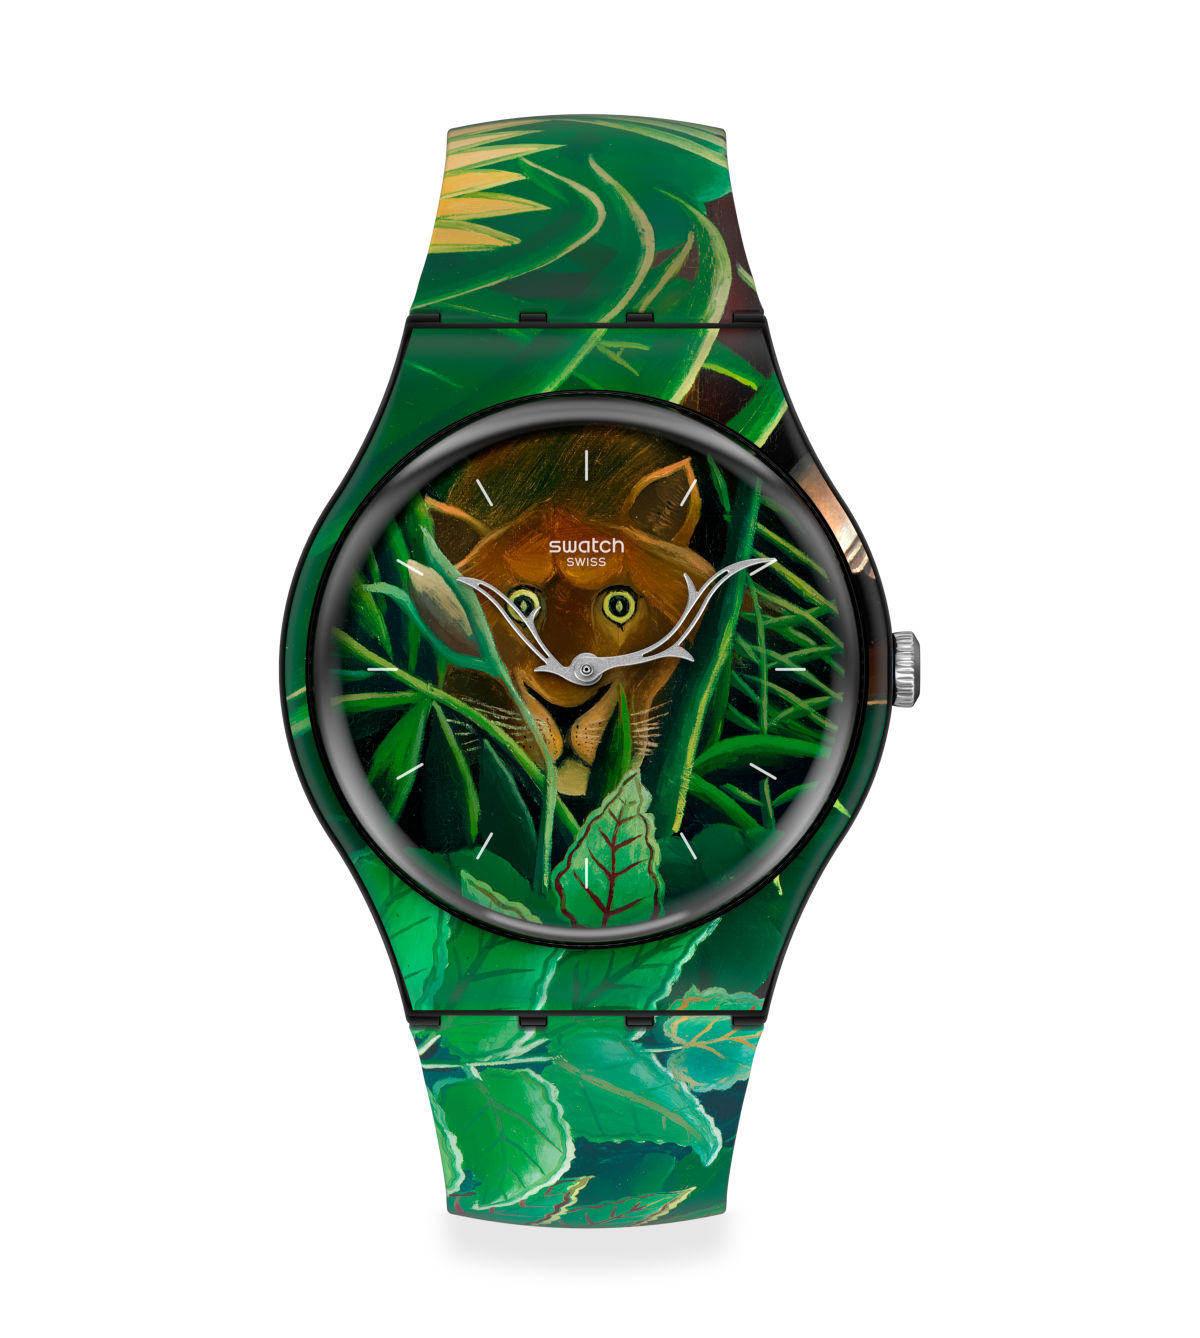 THE DREAM BY HENRI ROUSSEAU, THE WATCH - SUOZ333